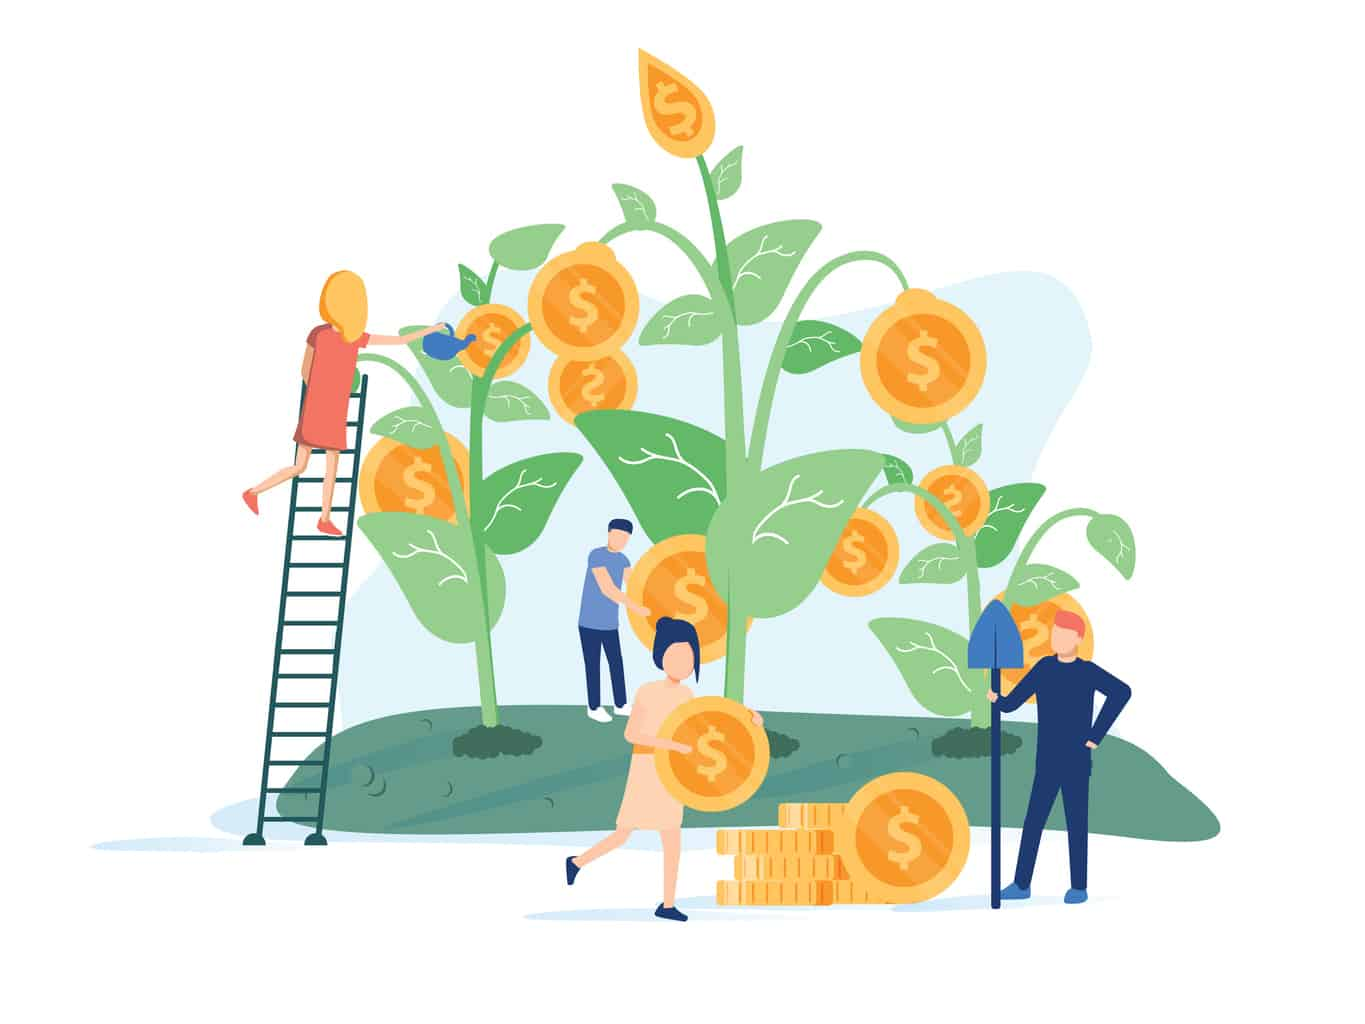 people engaged in the cultivation of money